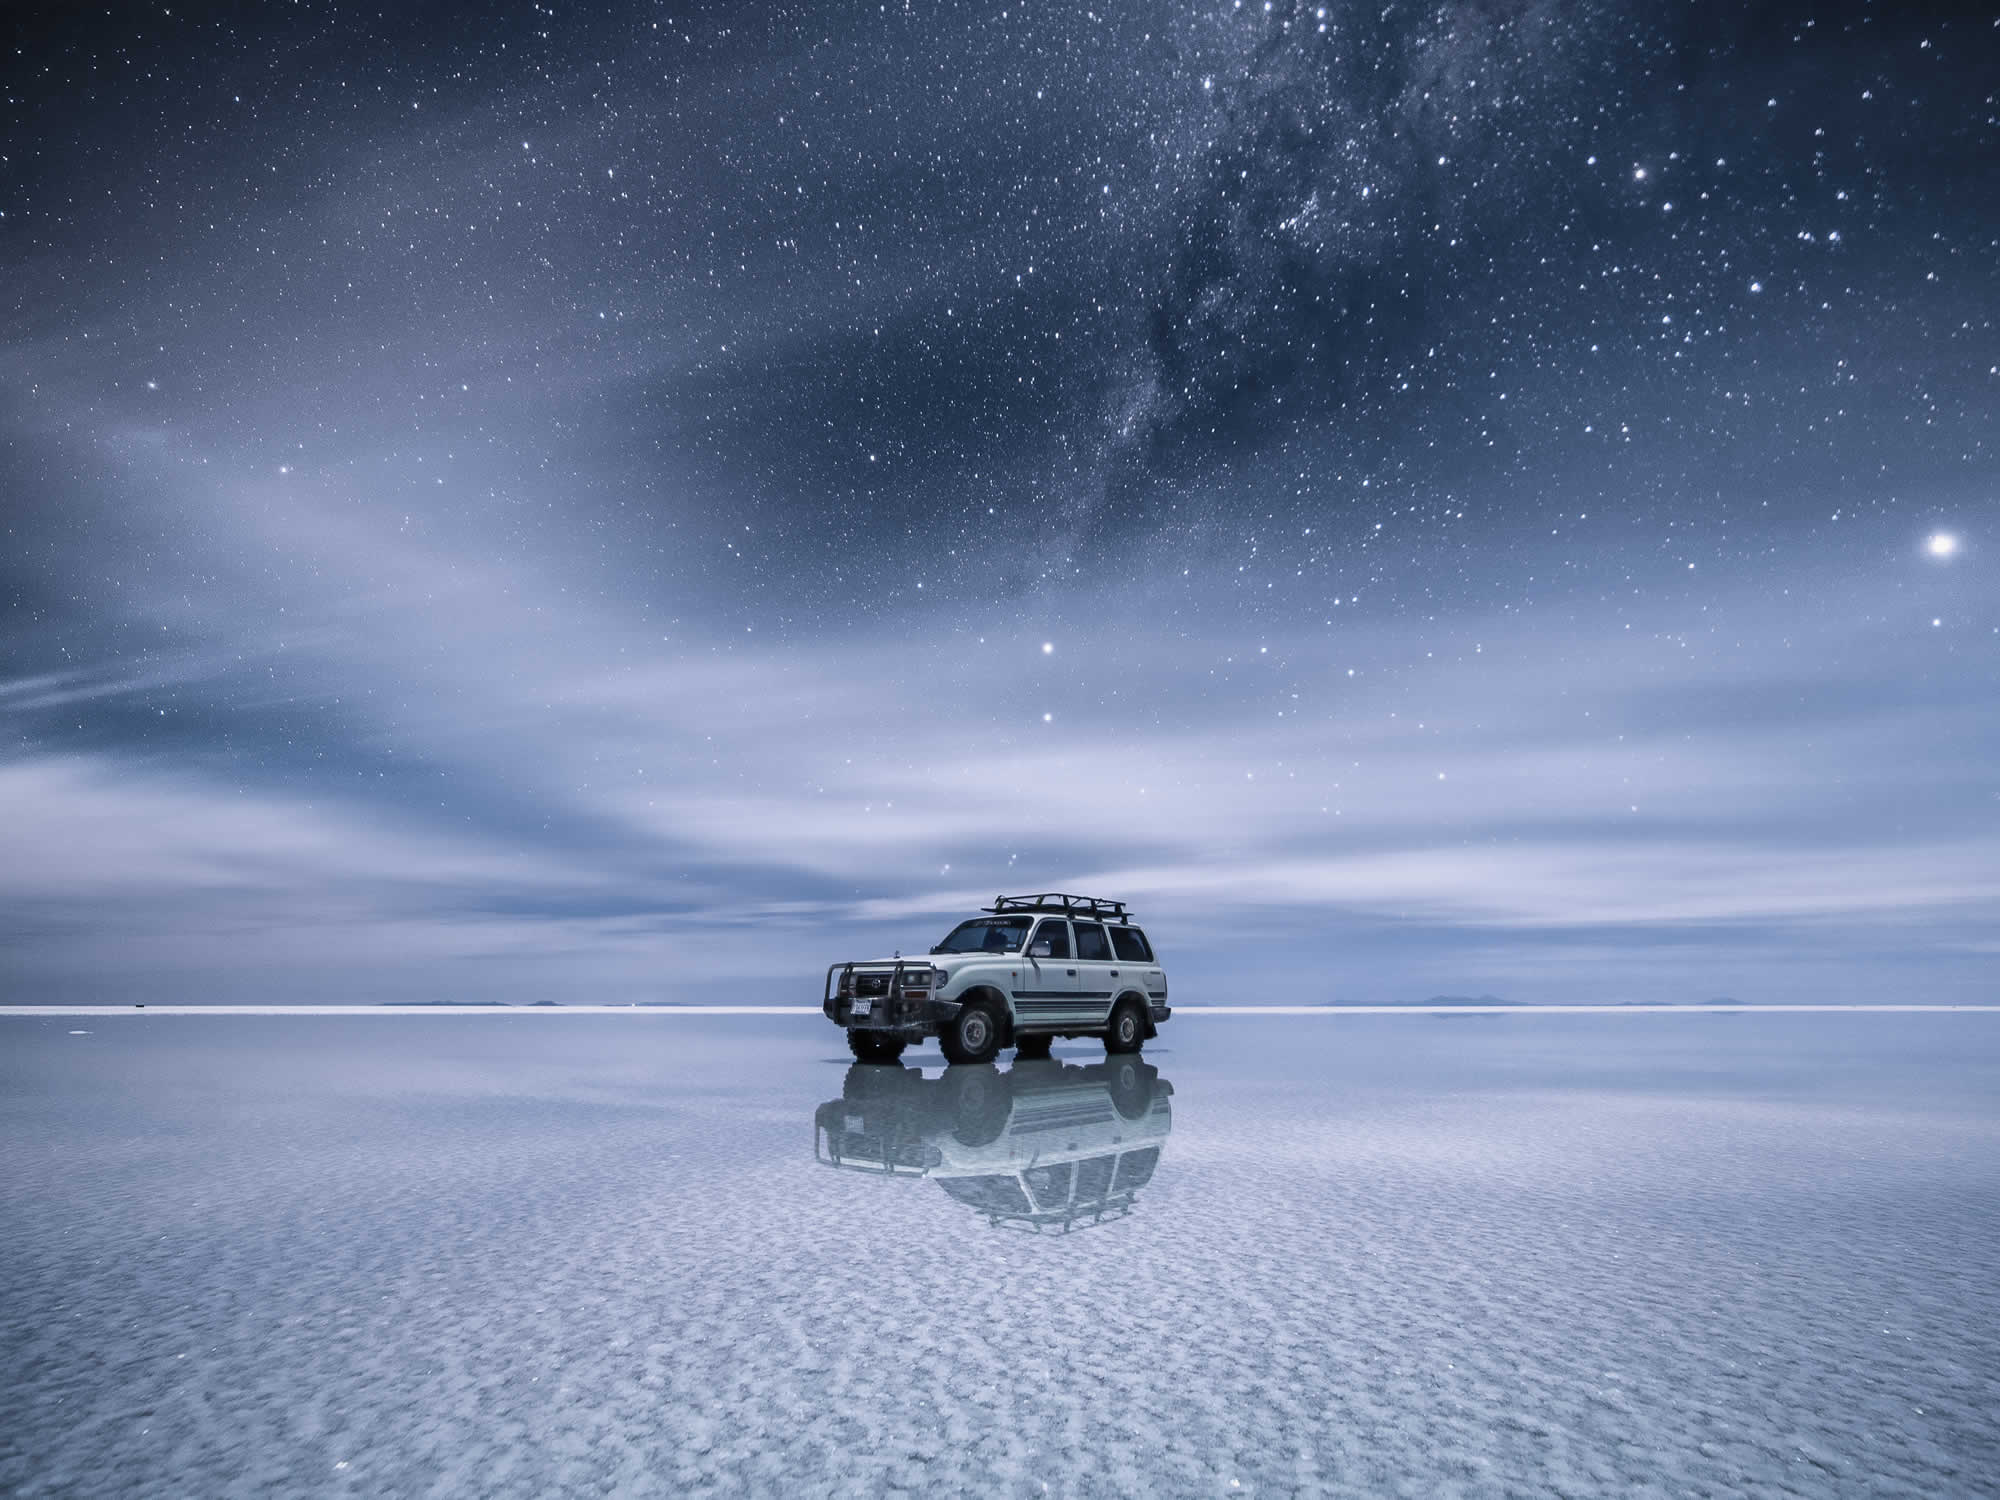 Stargazing in Uyuni